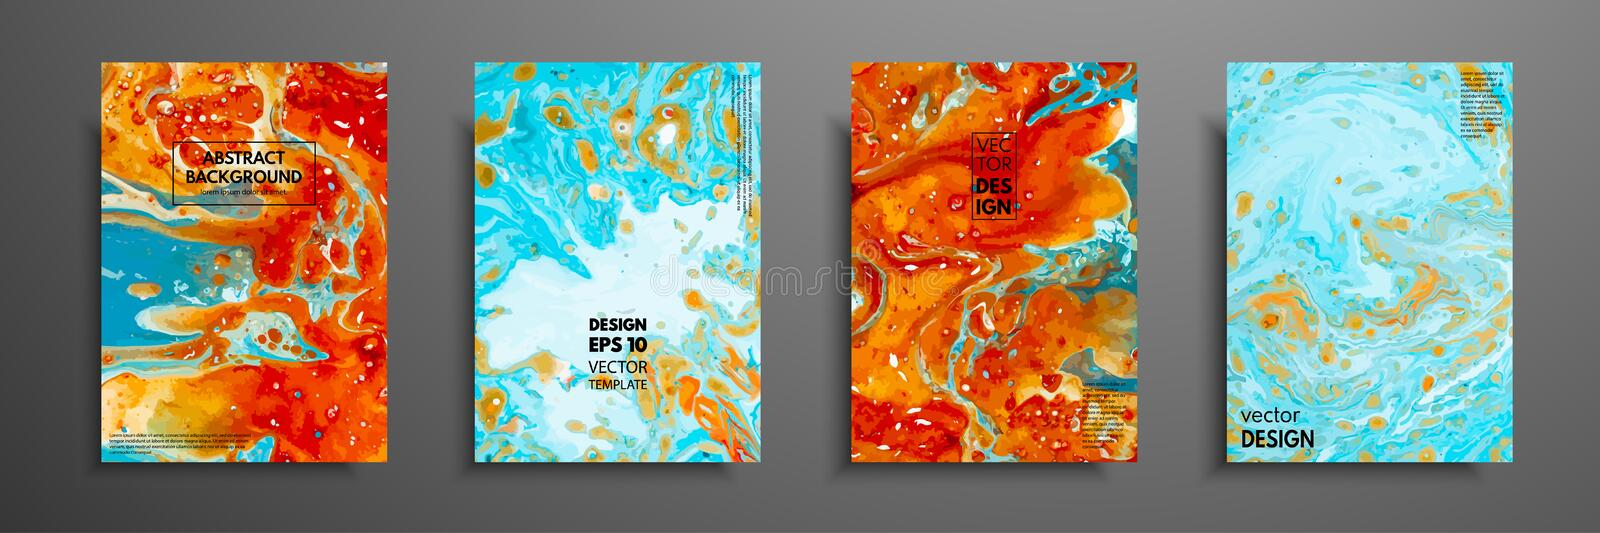 Colorful covers design set with textures. Closeup of the painting. Abstract bright hand painted background, fluid. Acrylic painting on canvas. Fragment of vector illustration